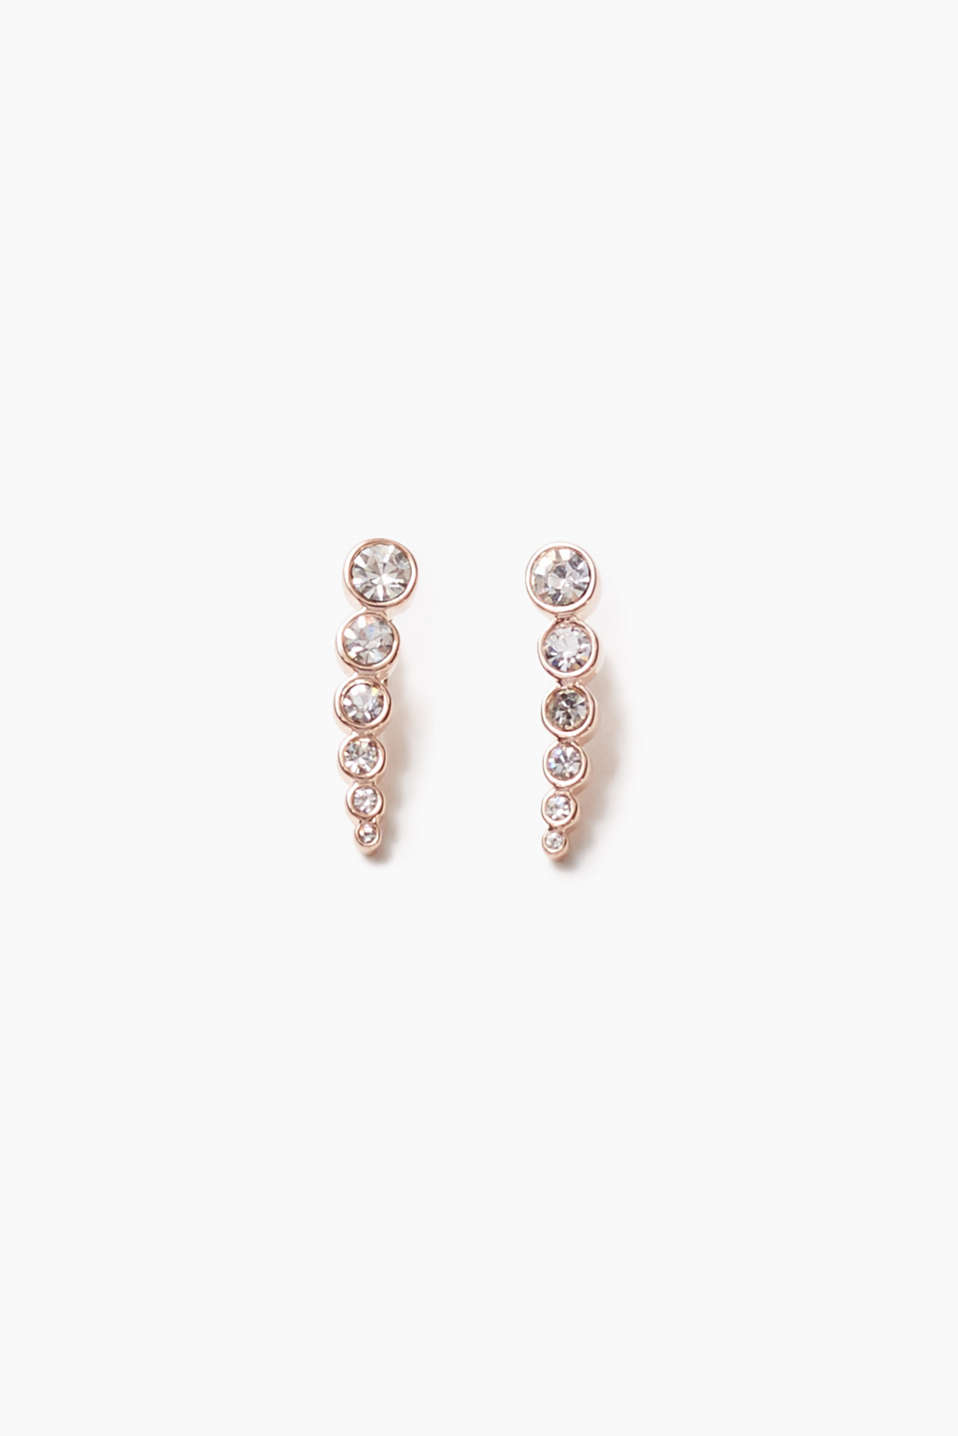 Worn running up the ear: Ear climbers set with rose gold plating and shimmering zirconia, length approx. 20 mm